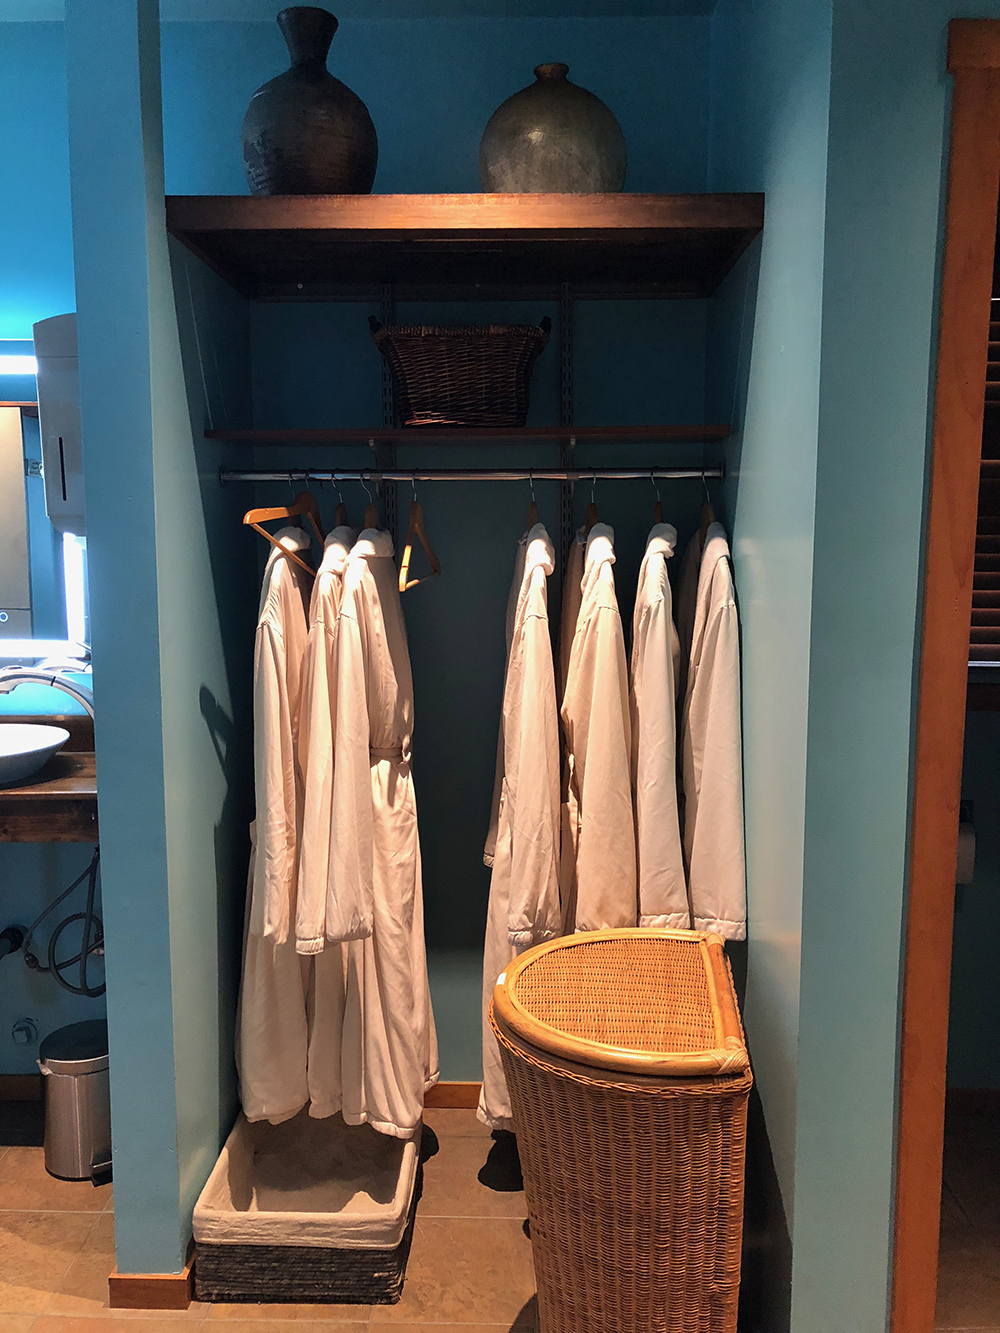 Guests can store their belongings in a locker and change into one of these comfortable robes.